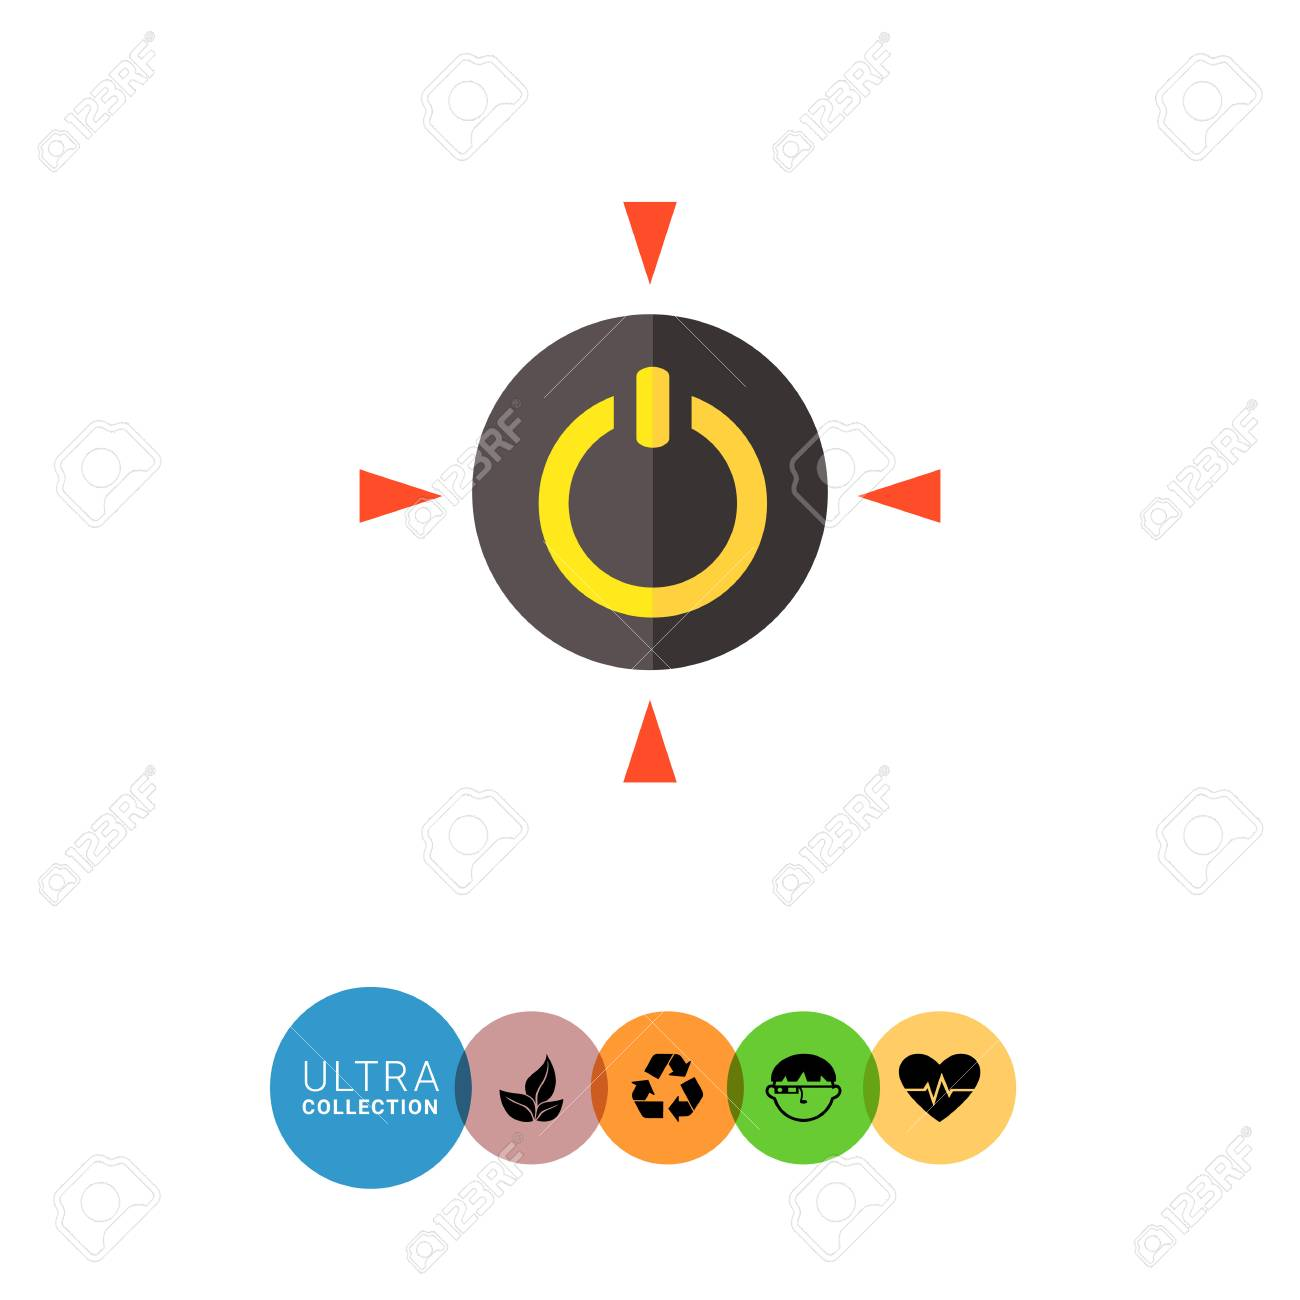 Multicolored Vector Icon Of Yellow Power Symbol In Black Circle